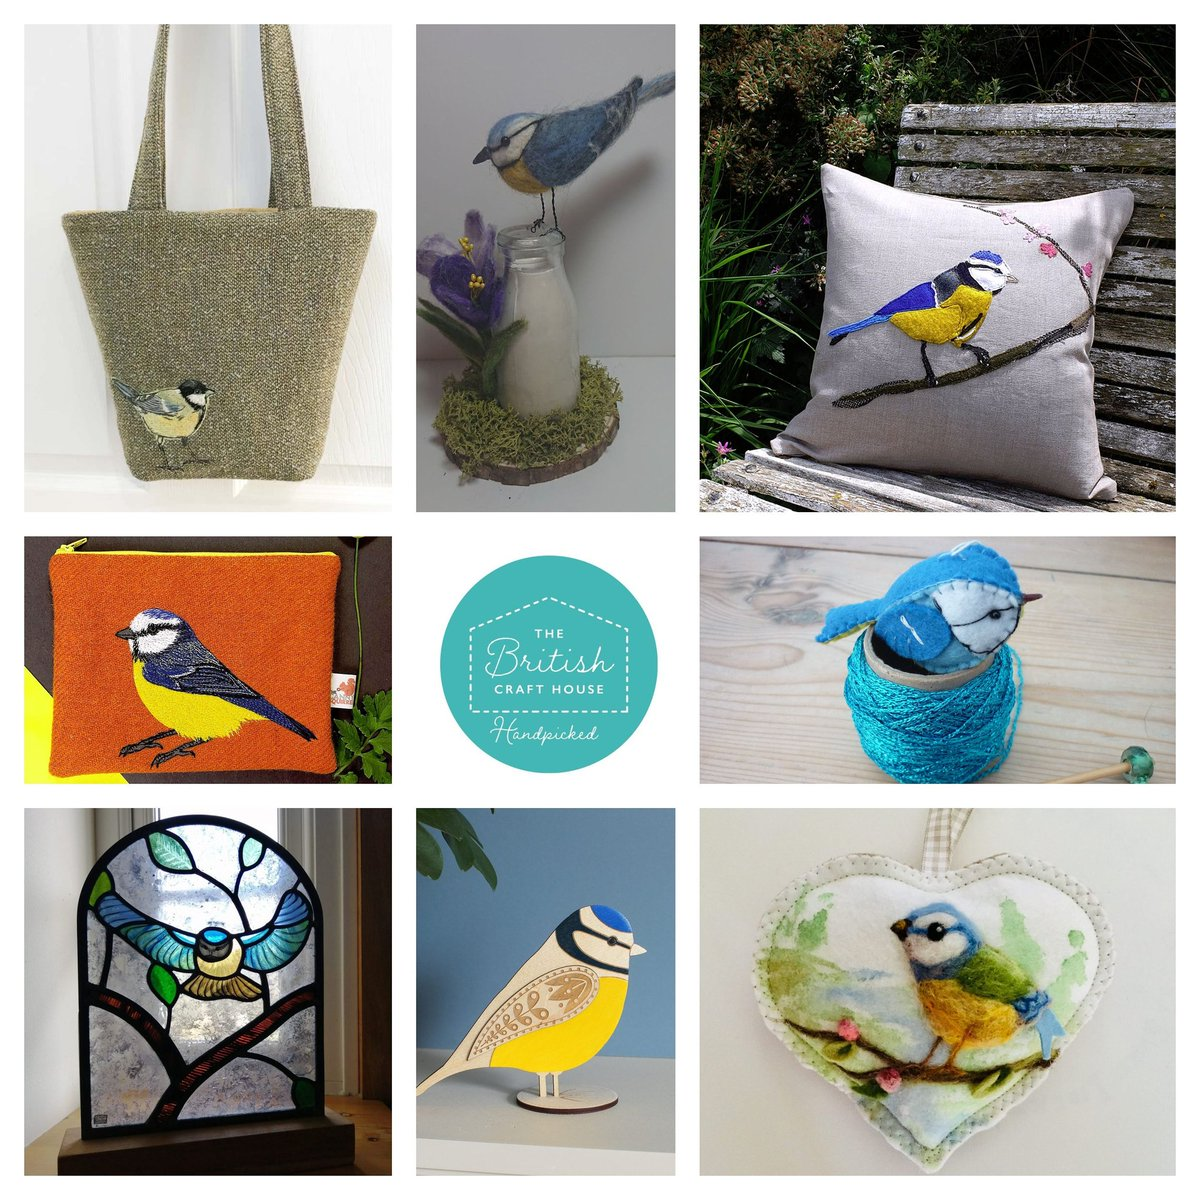 All these beautifully crafted Blue Tits are from makers @britishcrafthouse. Clockwise from top right #tbch #handmade #tbchboosters  @tuliphousenorfolk @wjneedlework sweetlibertybelle @Etchable_laser @CariadGlass @thecannysquirrel @Irene_C_designs @adorsdesign pic.twitter.com/nHuec62yGu